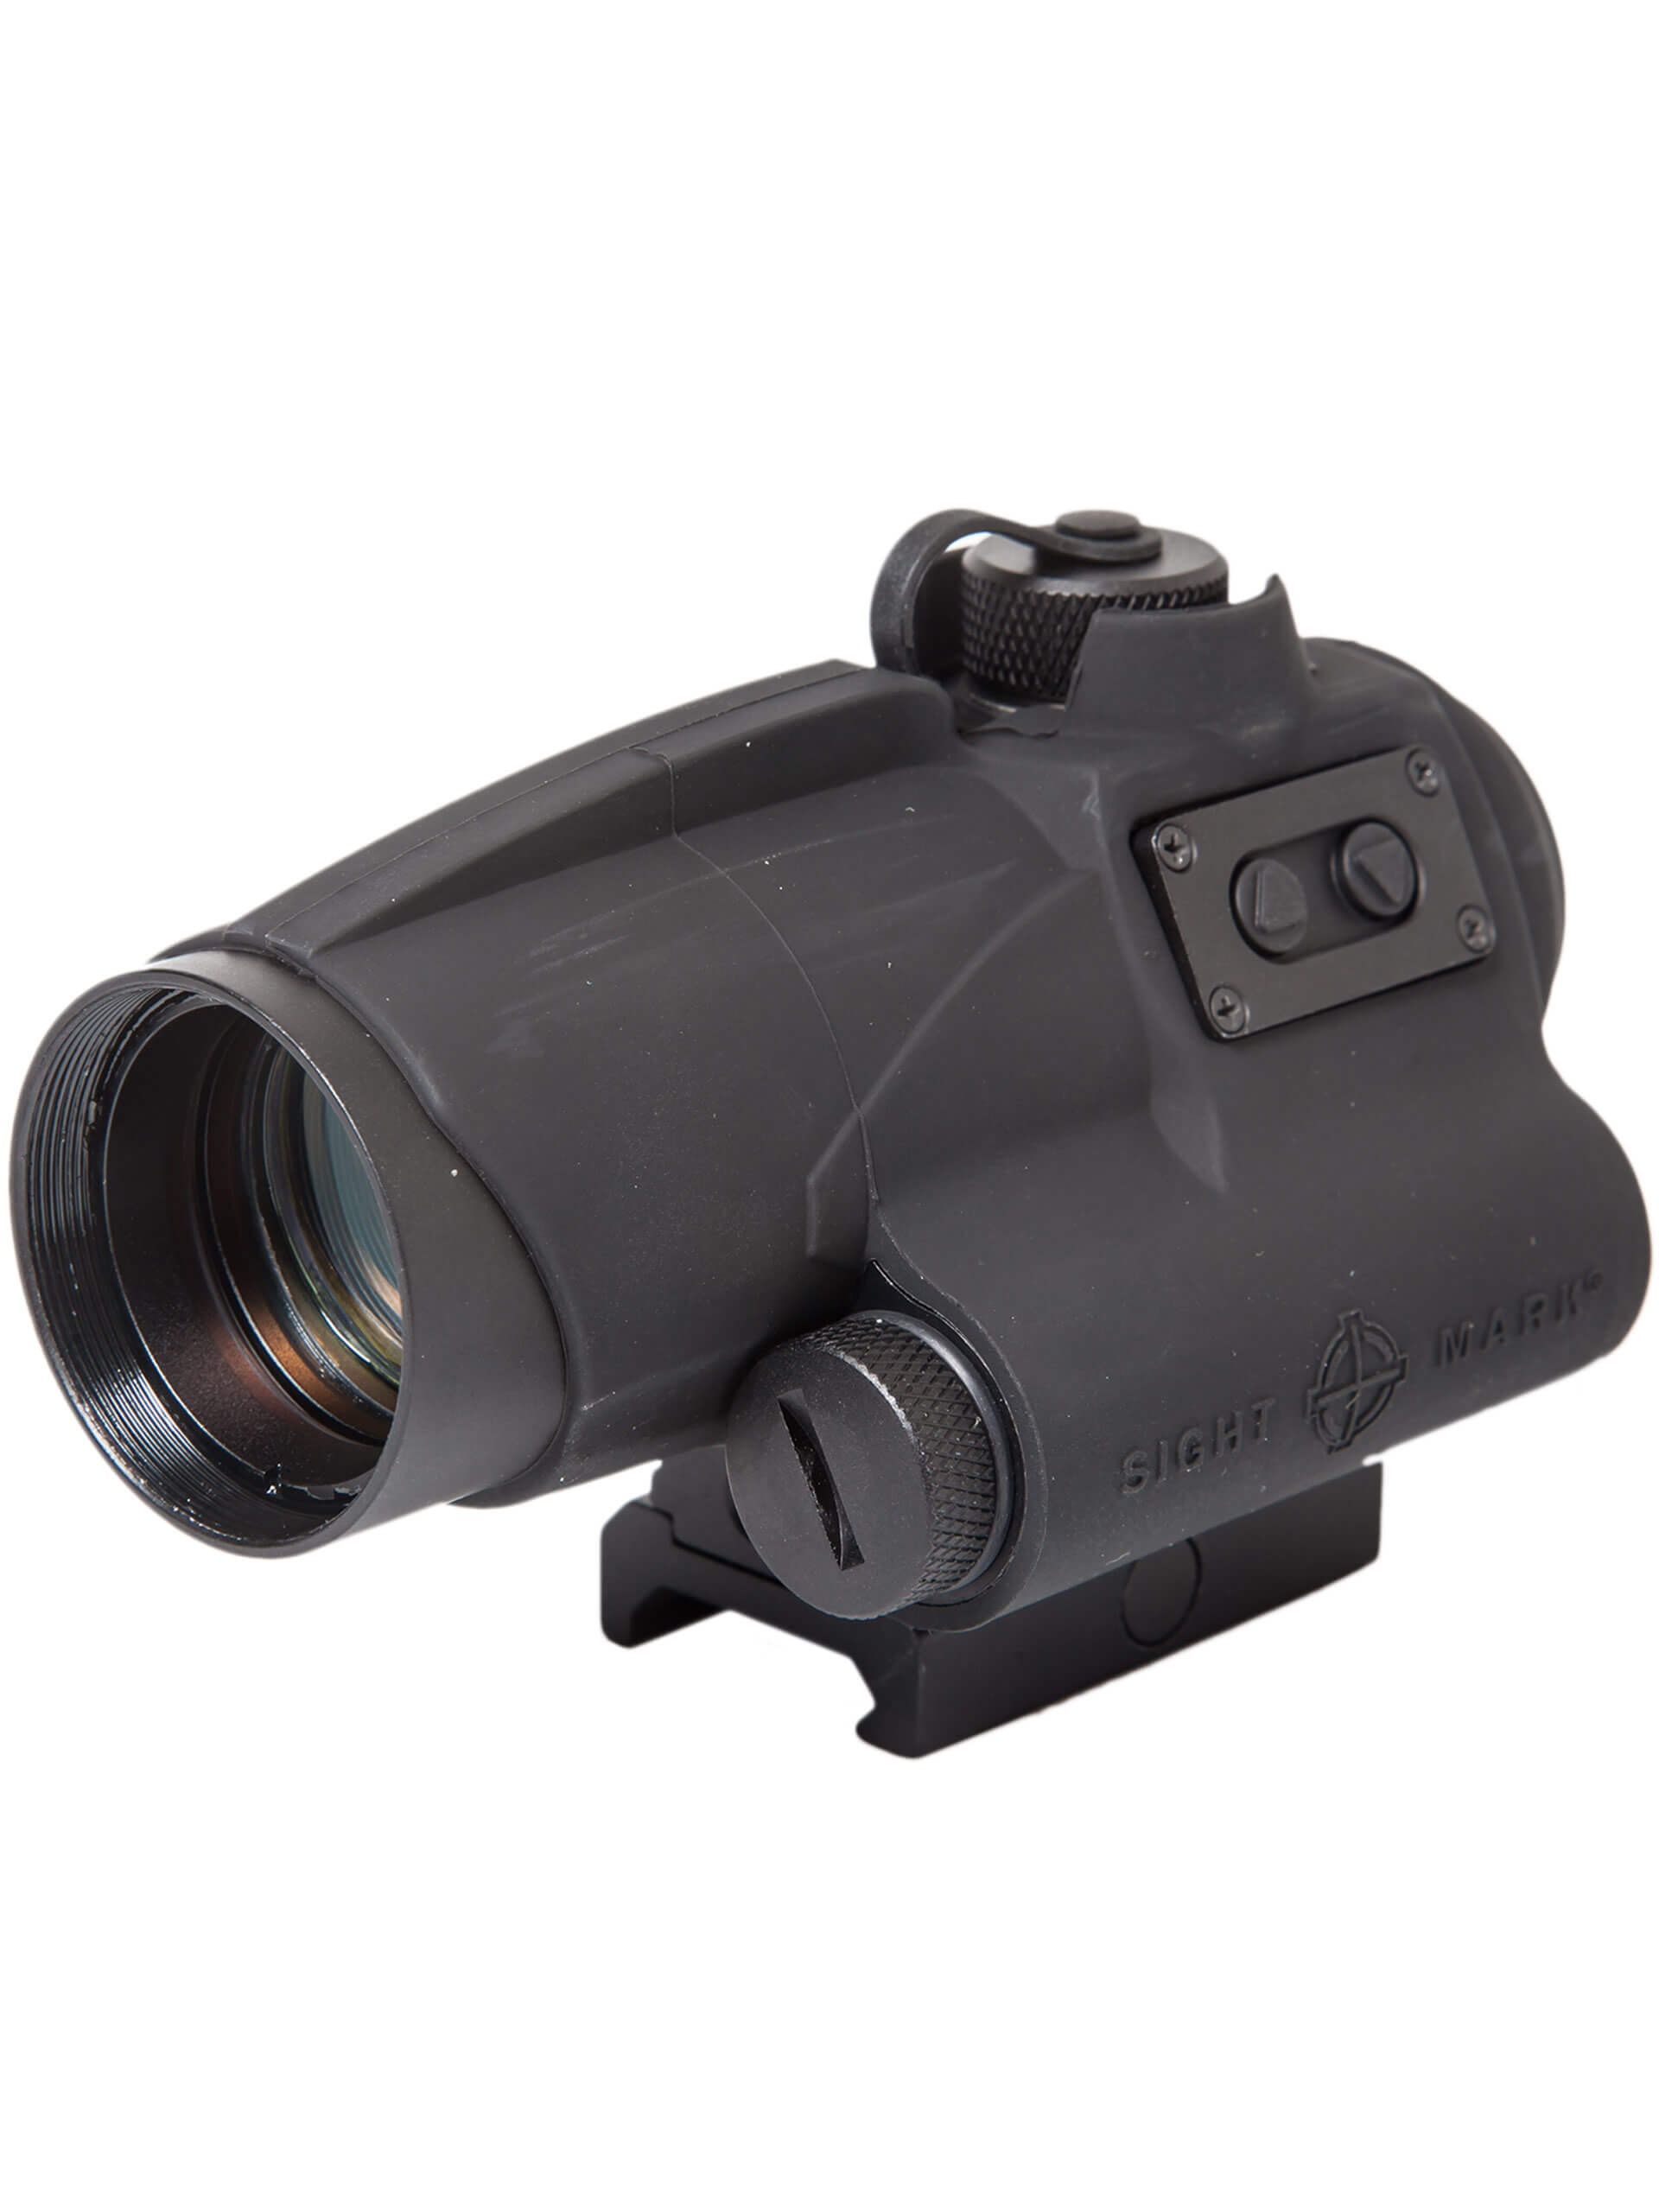 ae4206e049f Sightmark Wolverine 1x28 FSR Red Dot Sight